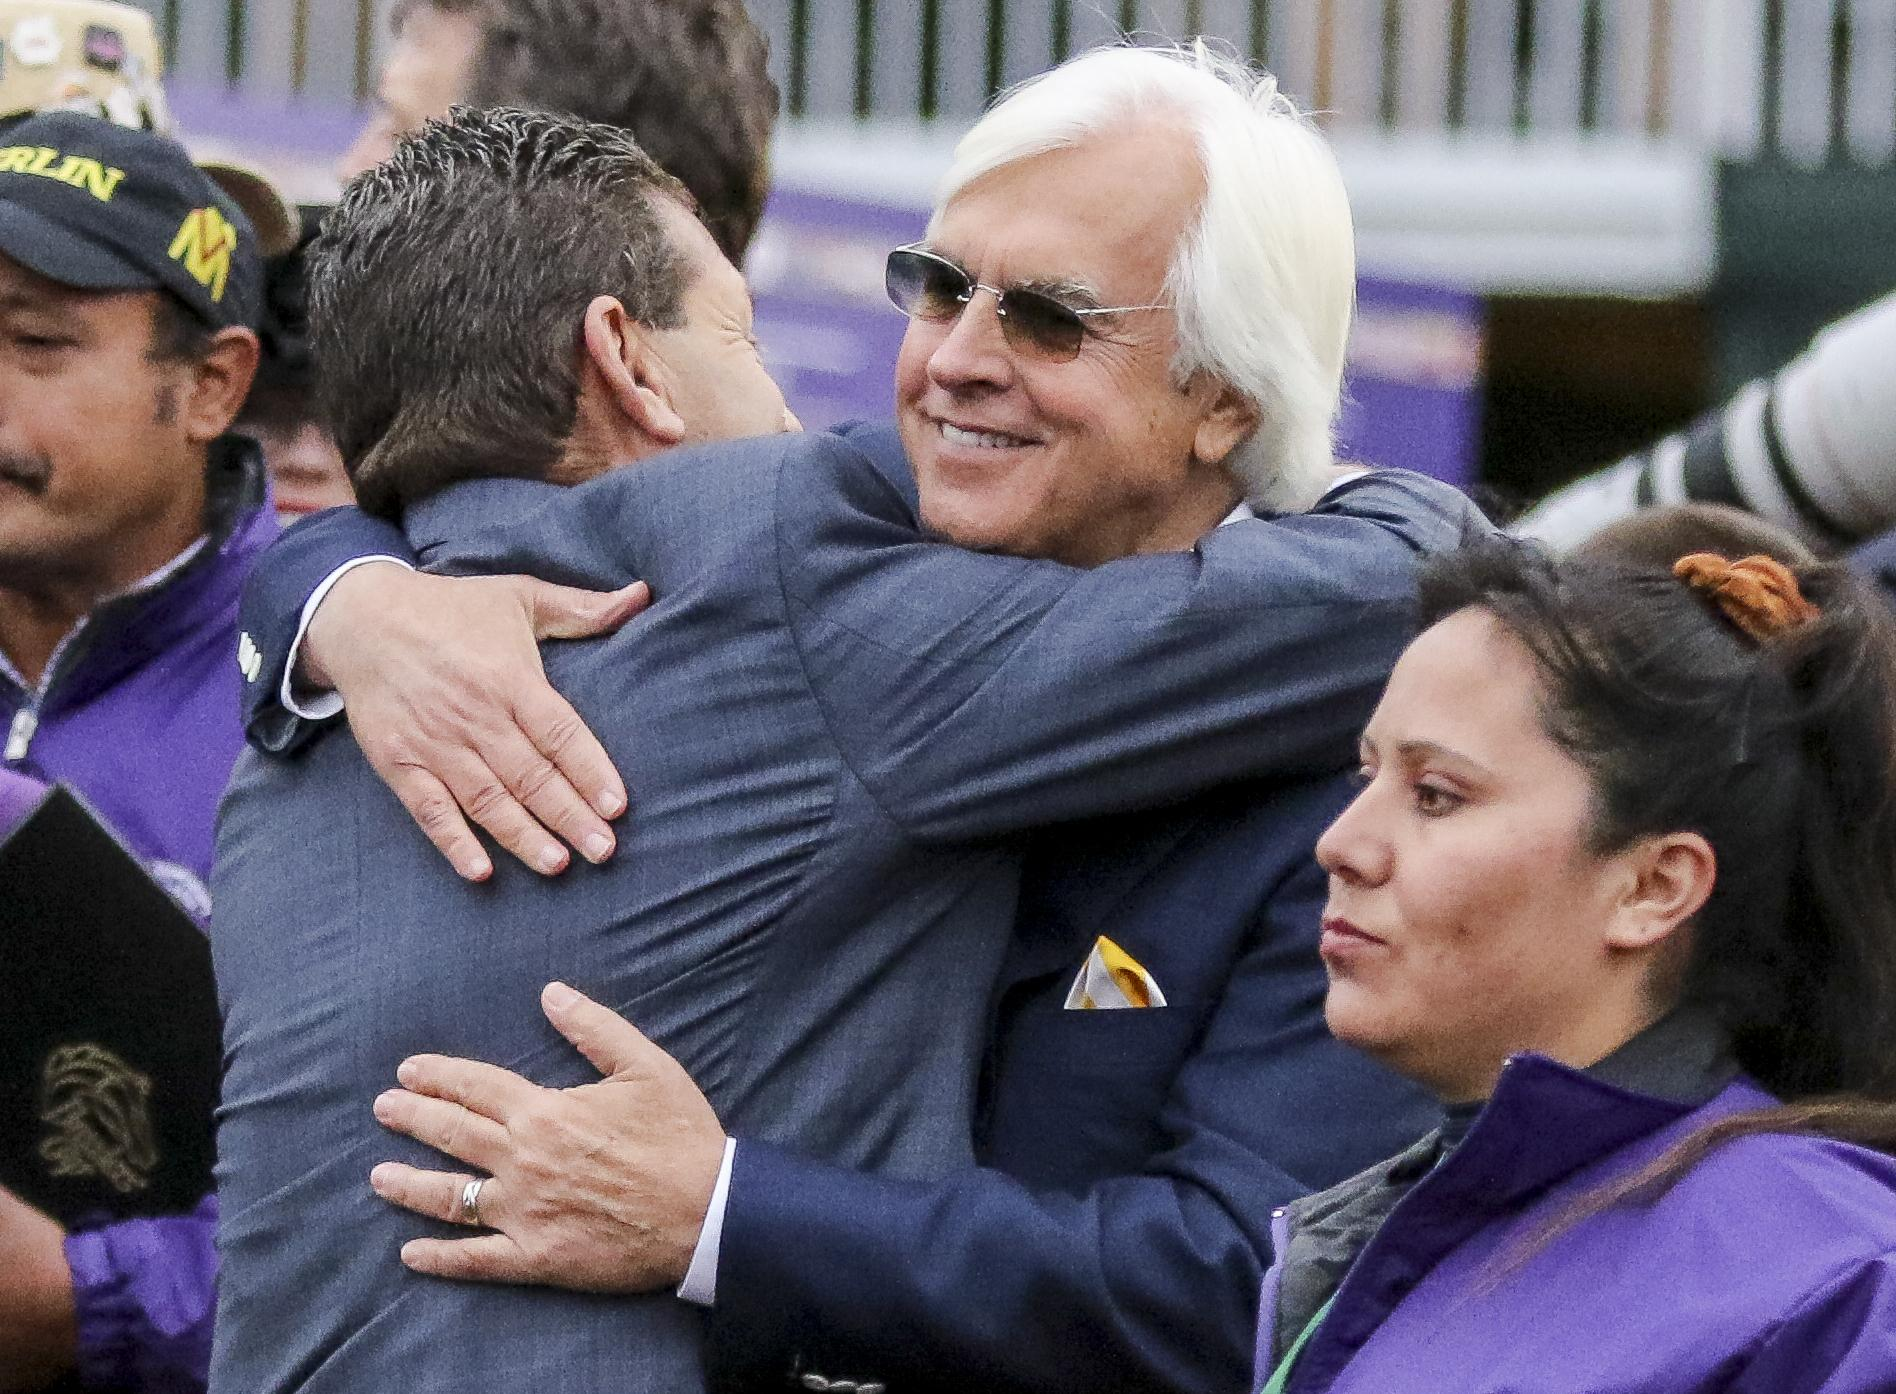 Accelerate favoured in Breeders' Cup Classic from No